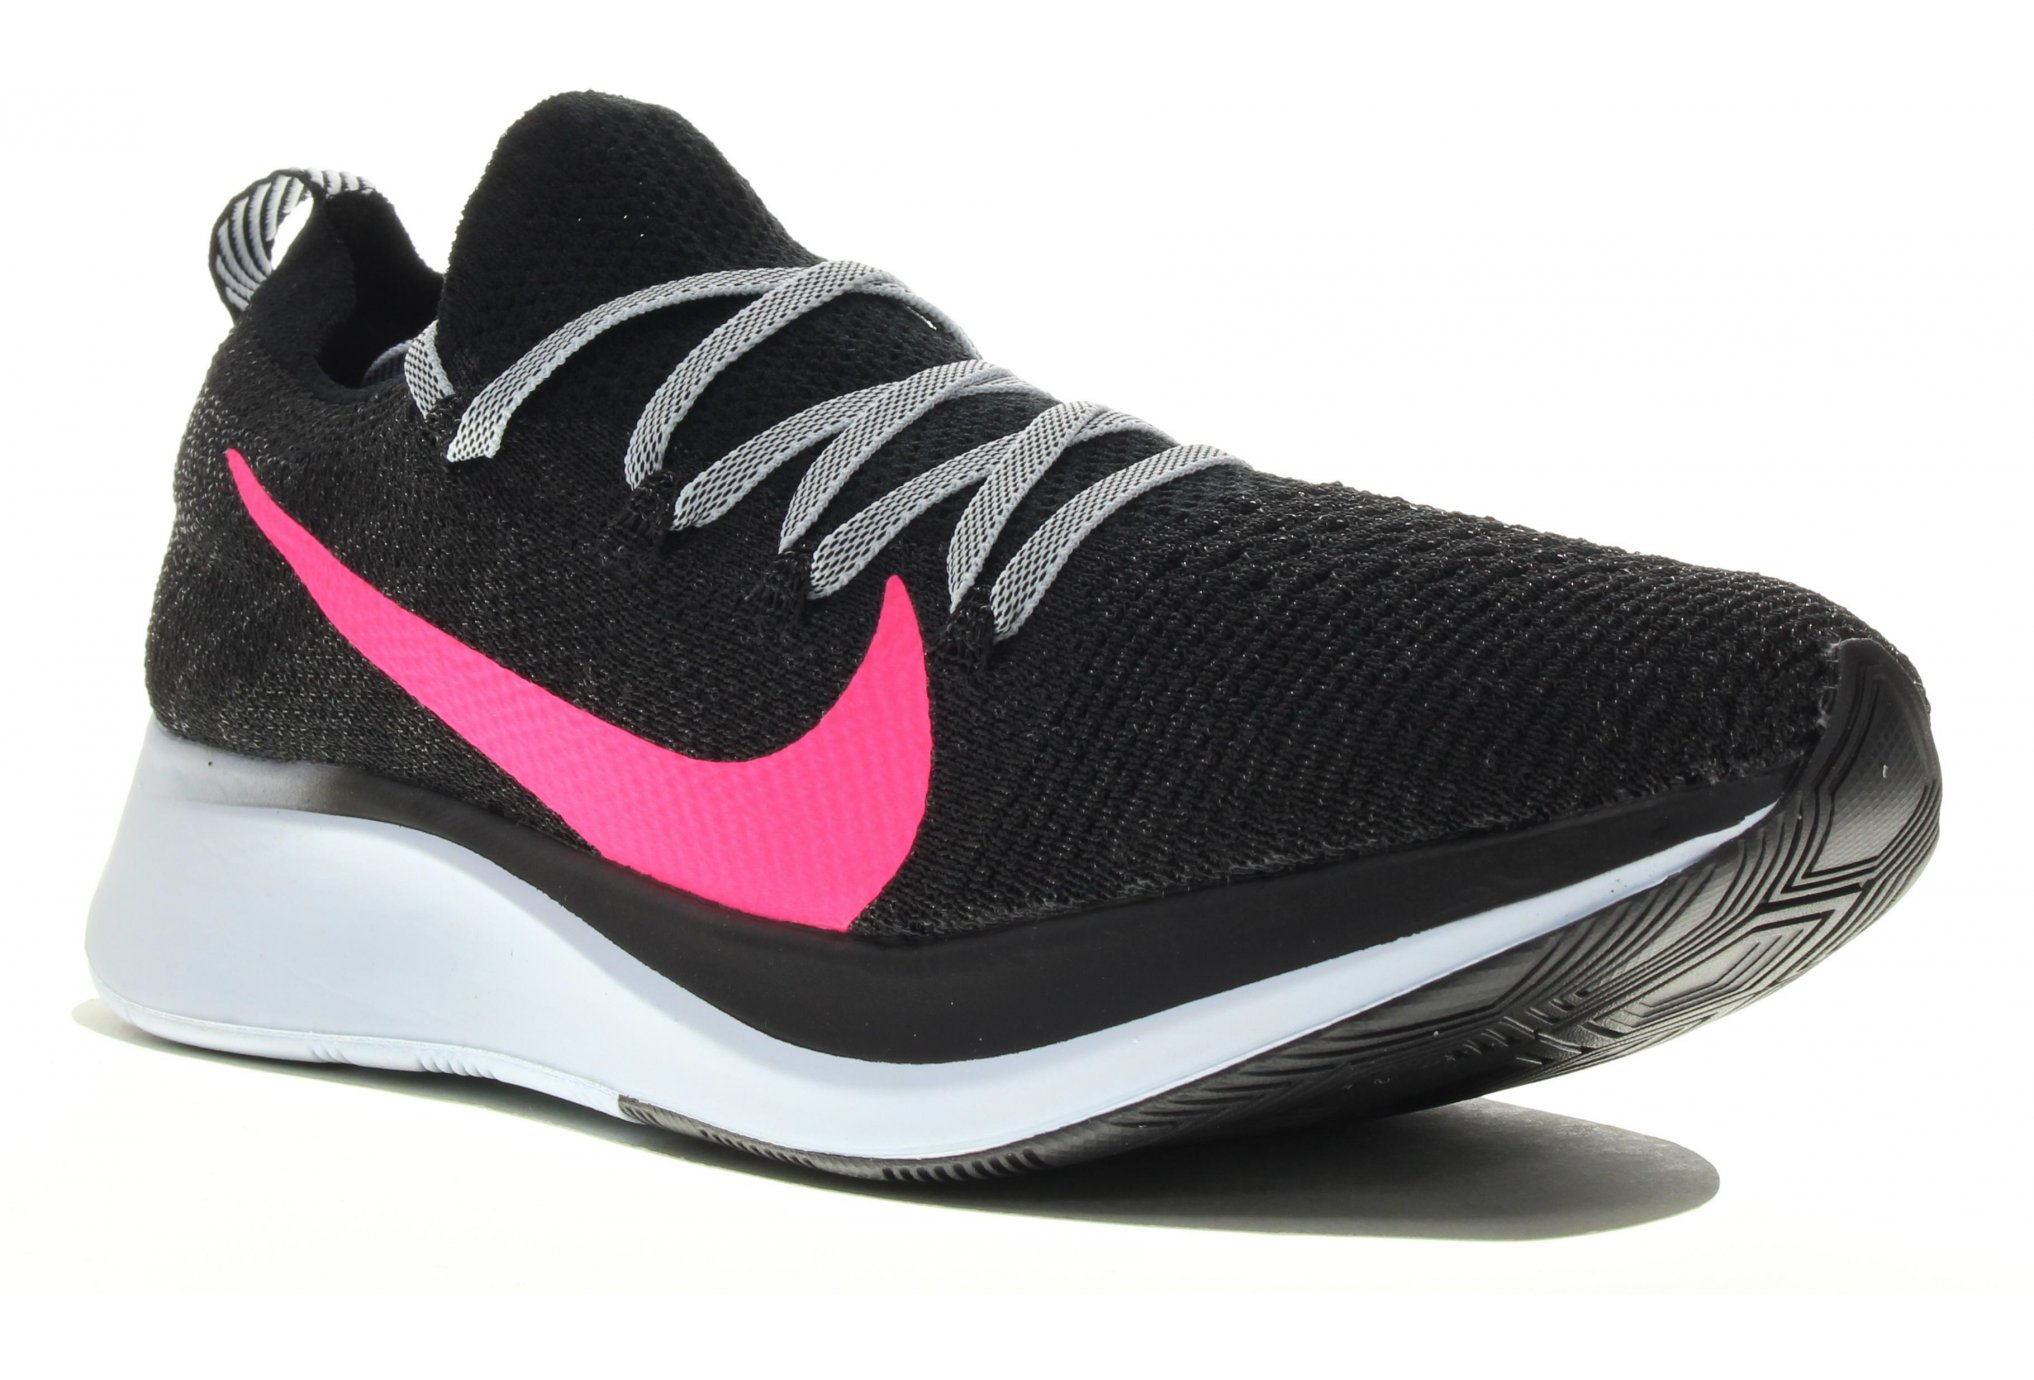 Nike Zoom Fly Flyknit Chaussures running femme